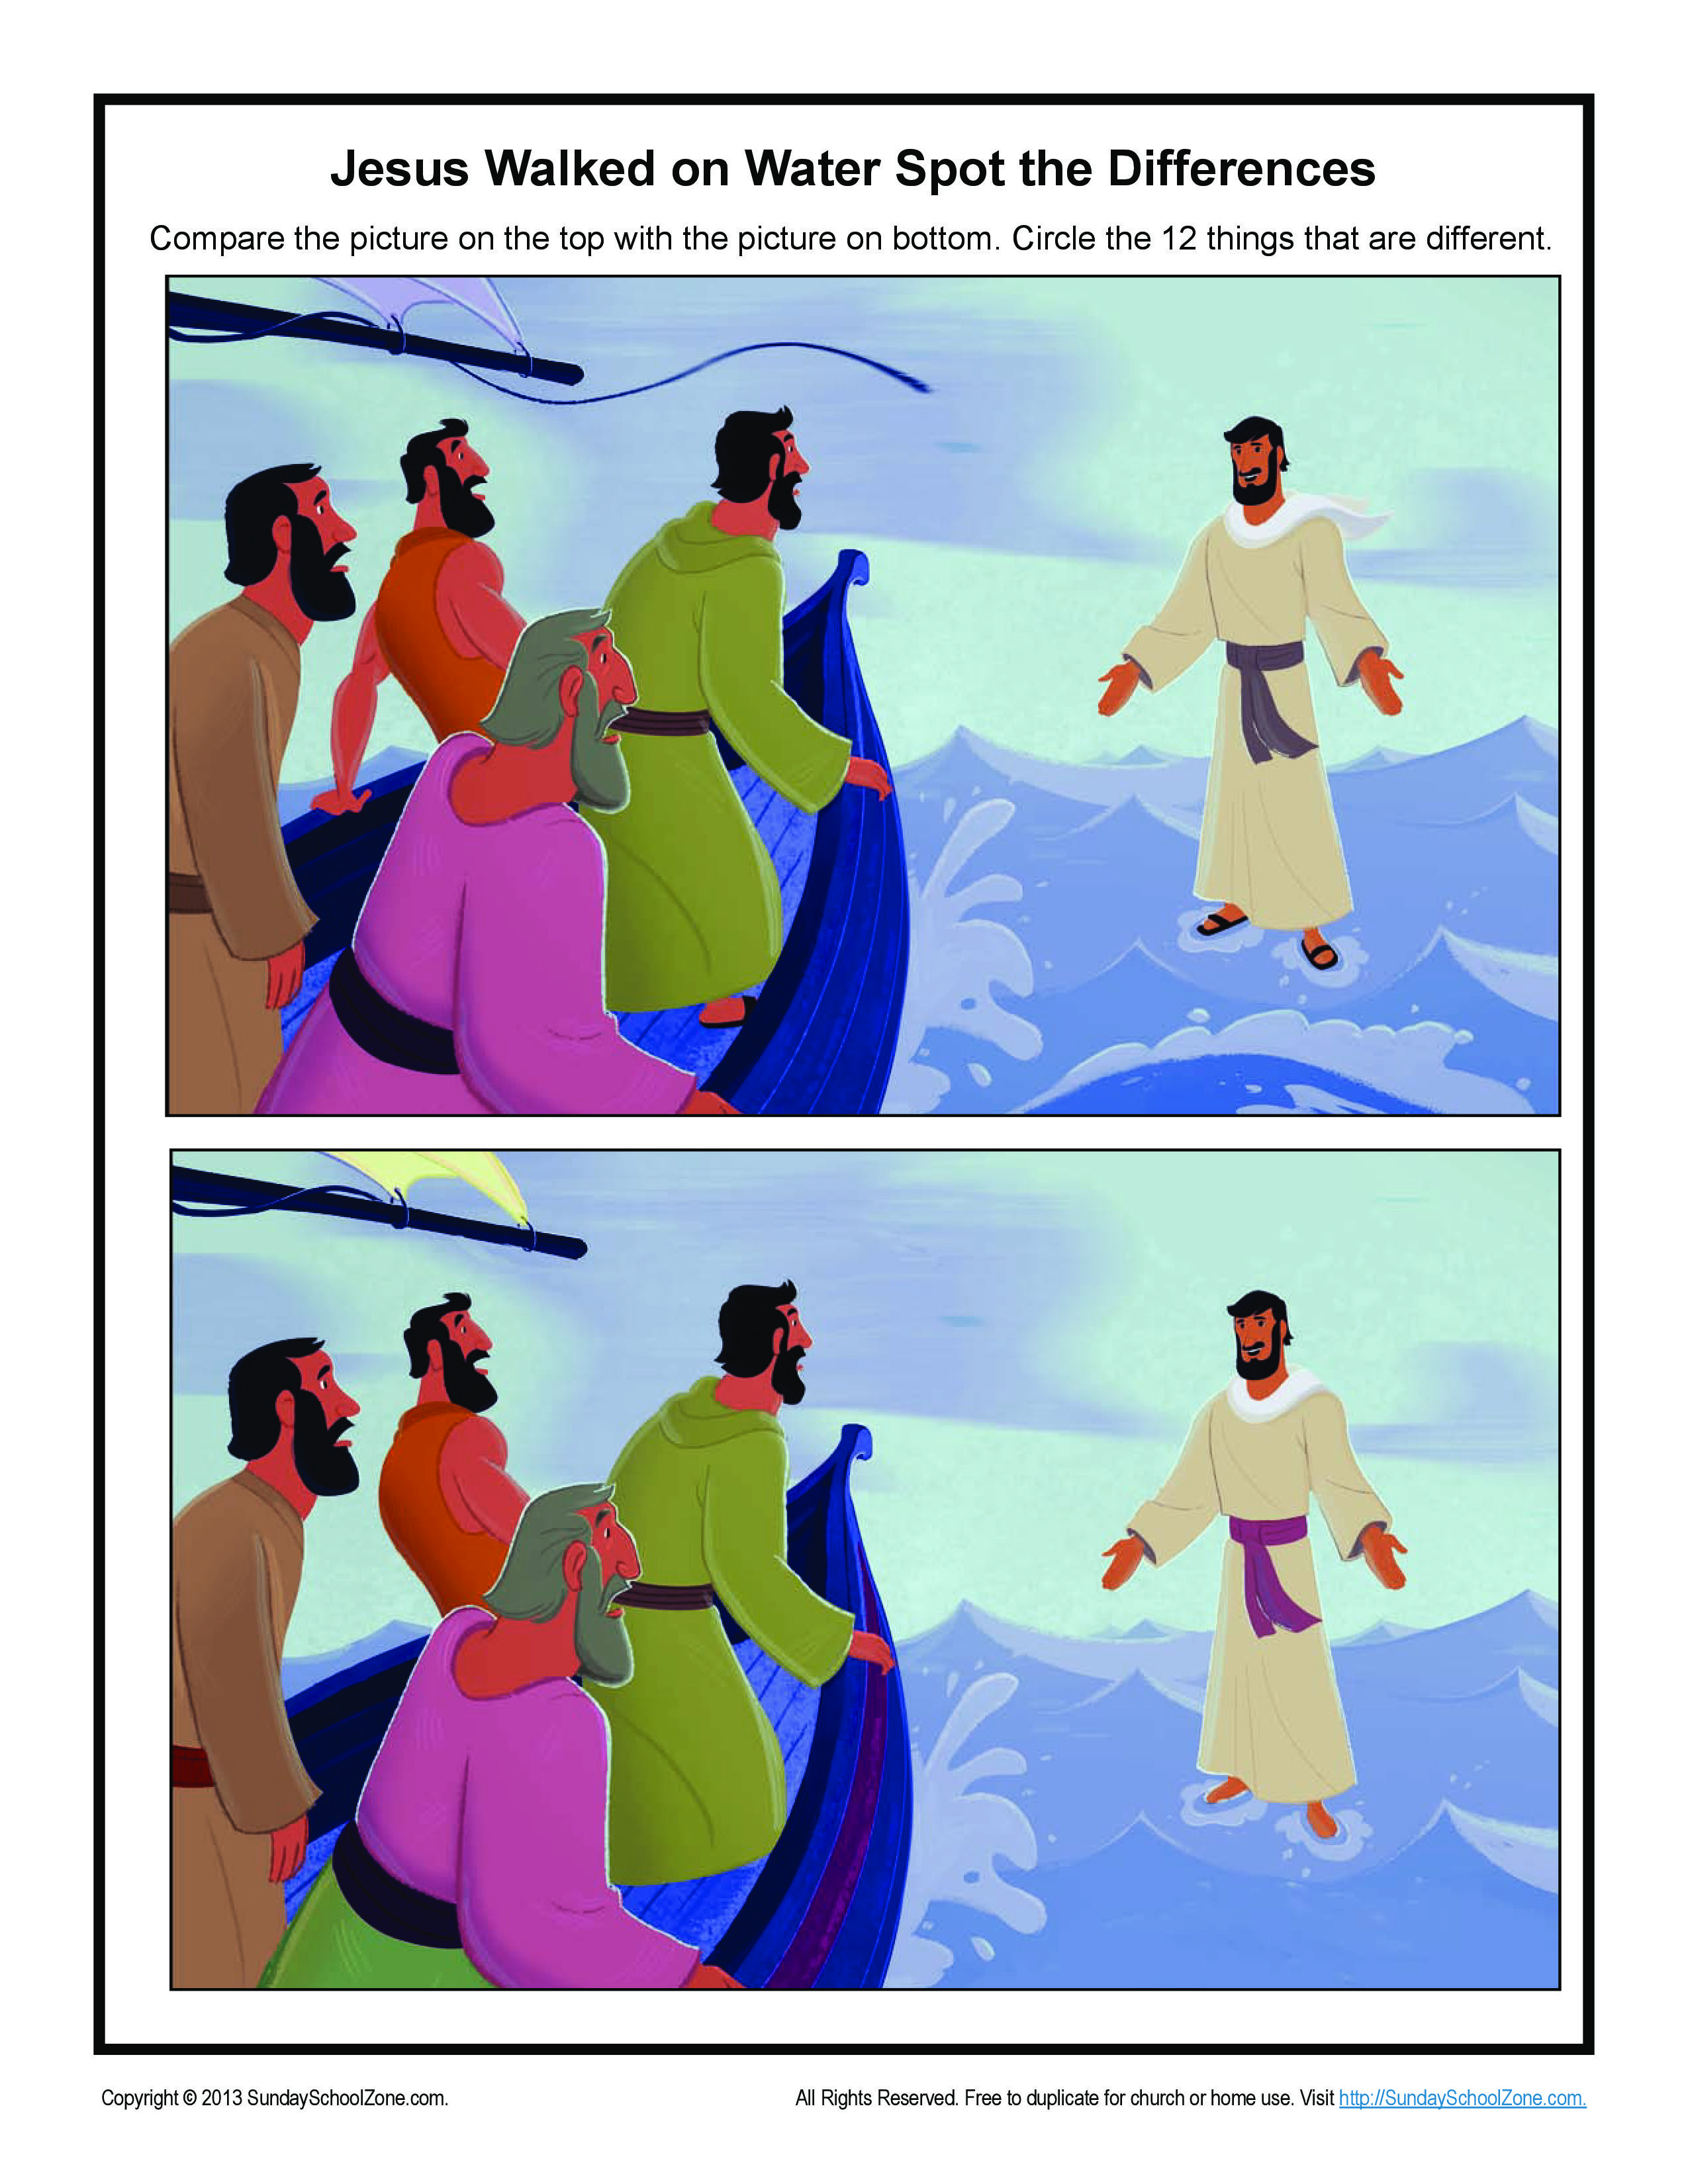 Jesus Walks On Water Spot The Differences Game Bible Activities For Children Jesus Walk On Water Walk On Water Bible Activities